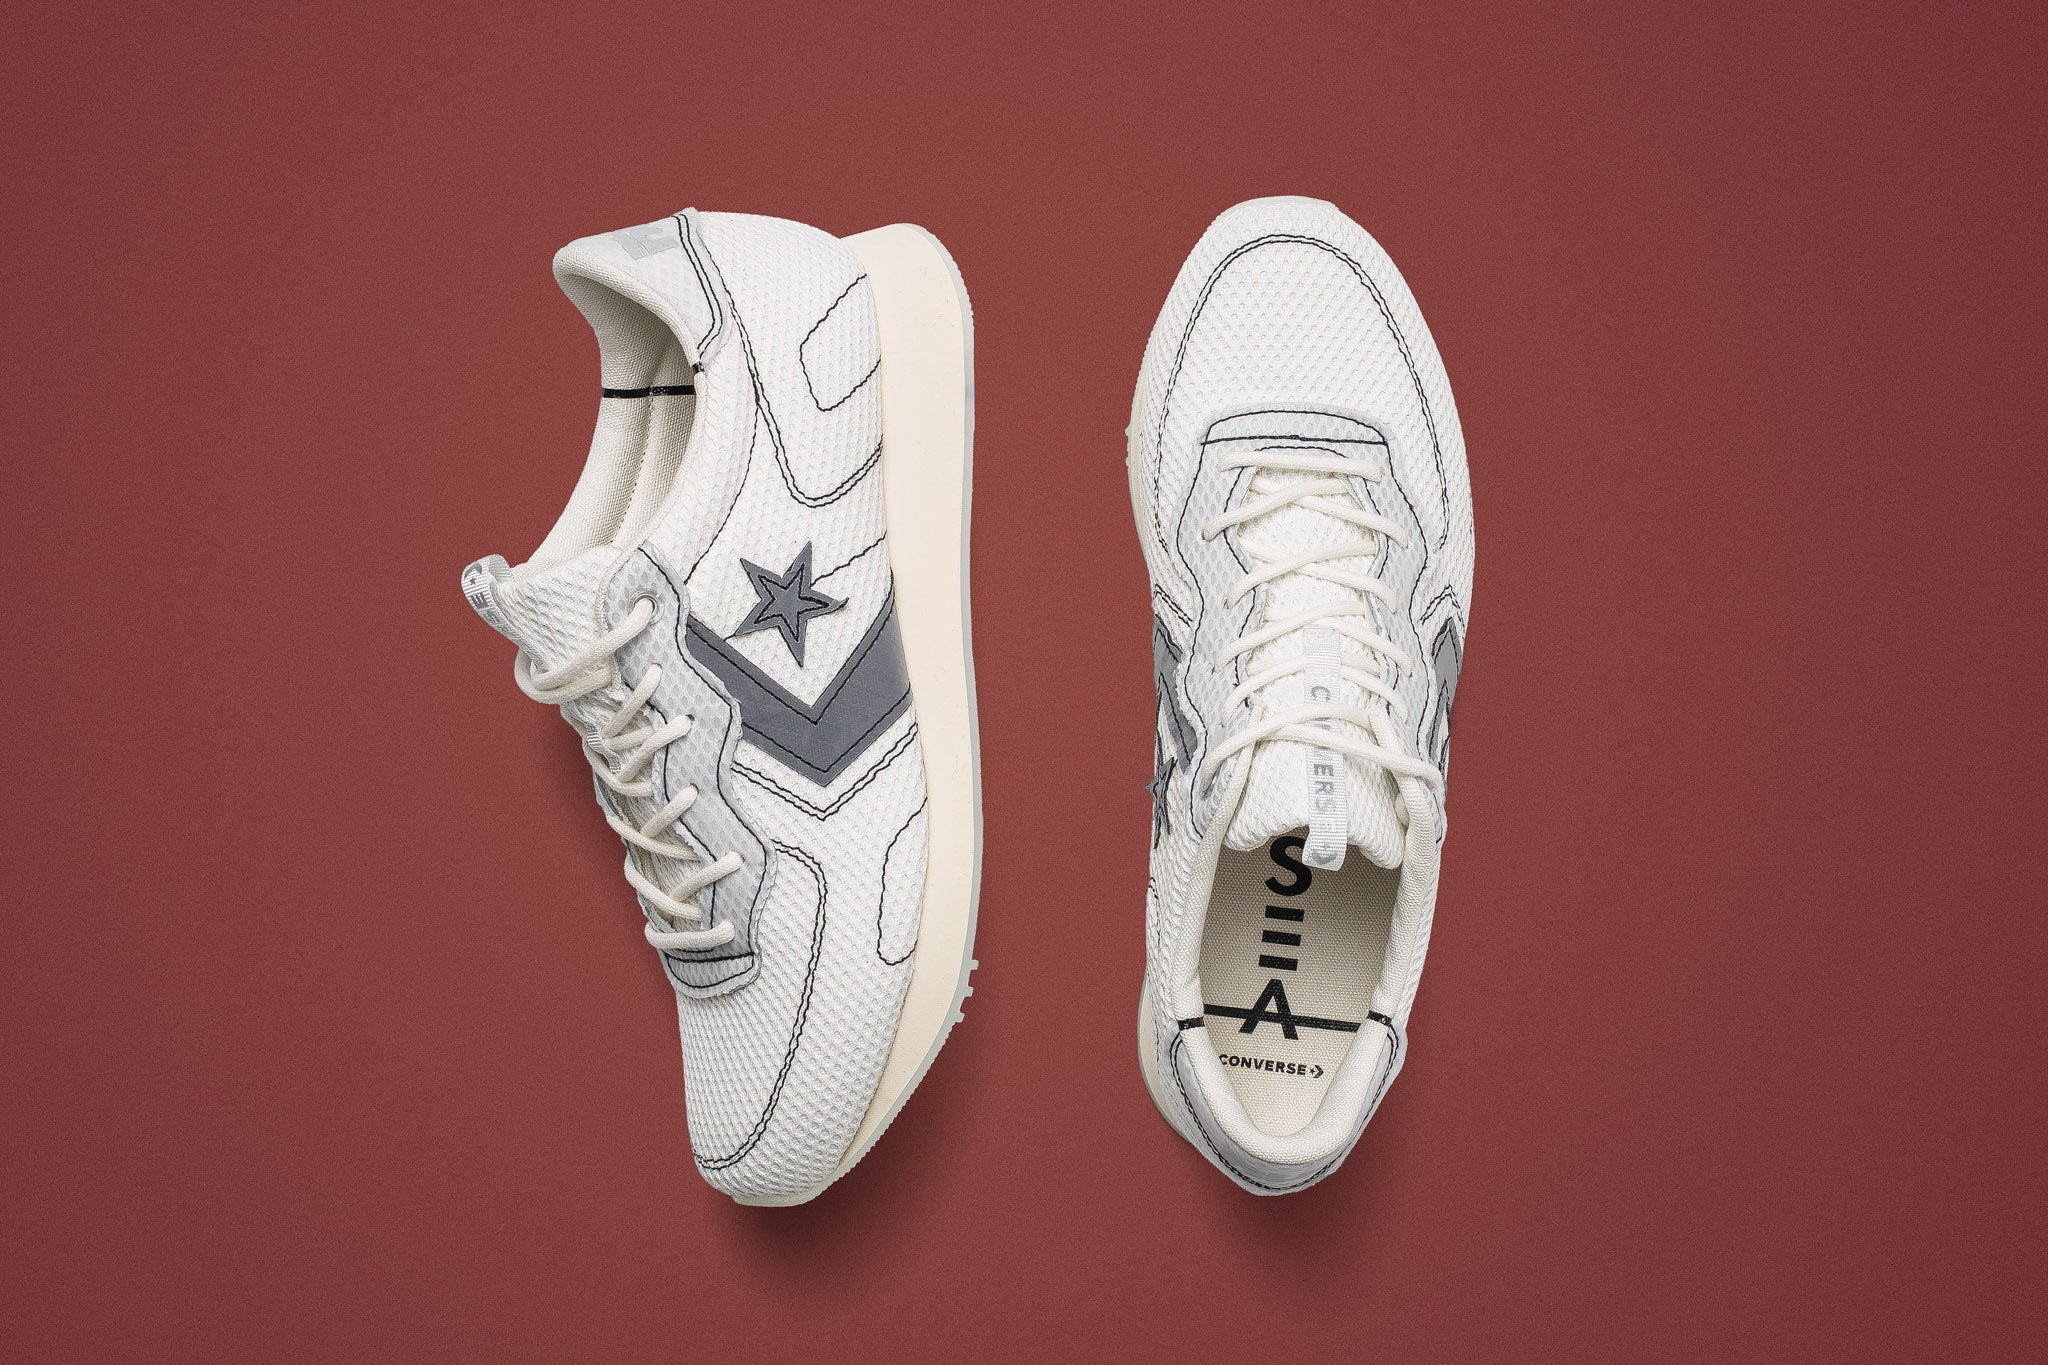 c38ed18336c1 Jumping on the next collab are Vince Staples and Converse for the second  time